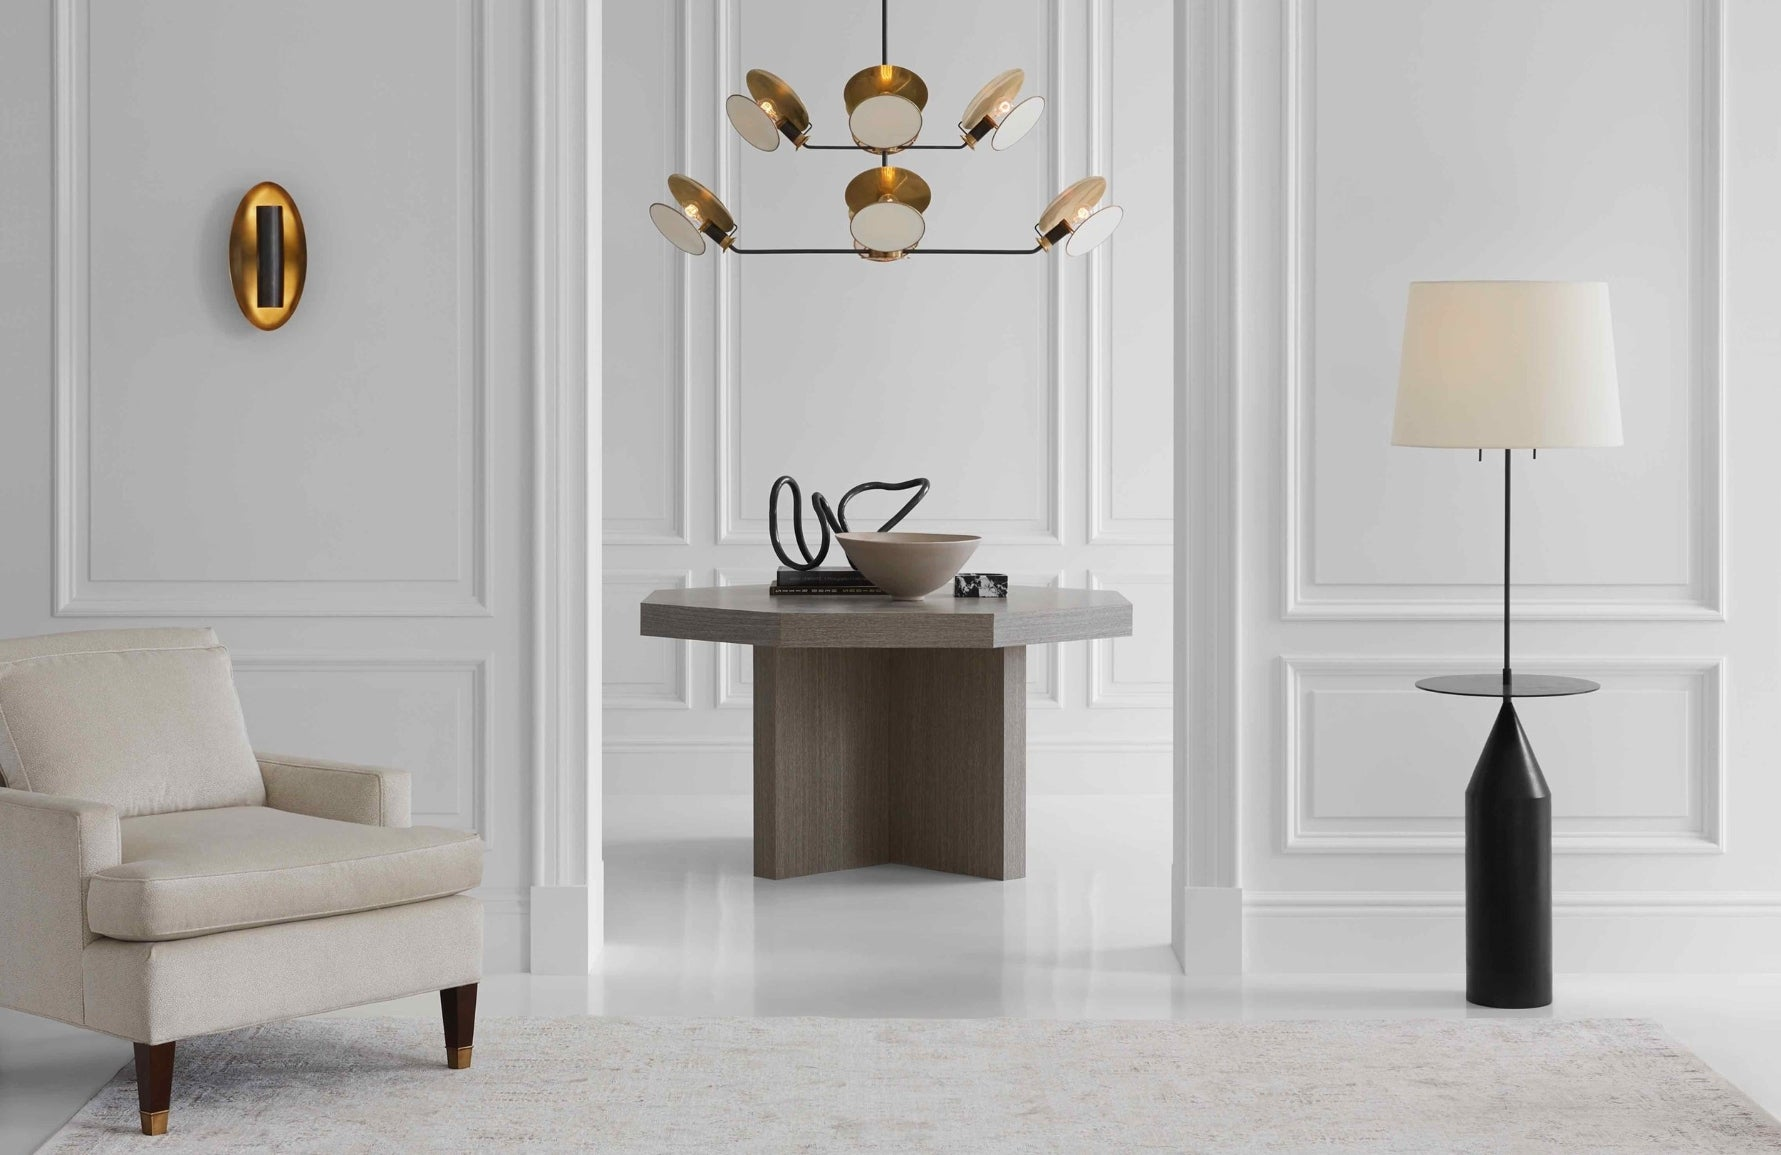 The Best of Lighting Design: 6 Luxury Brands to Know - Healthfield & Co. - LuxDeco Style Guide